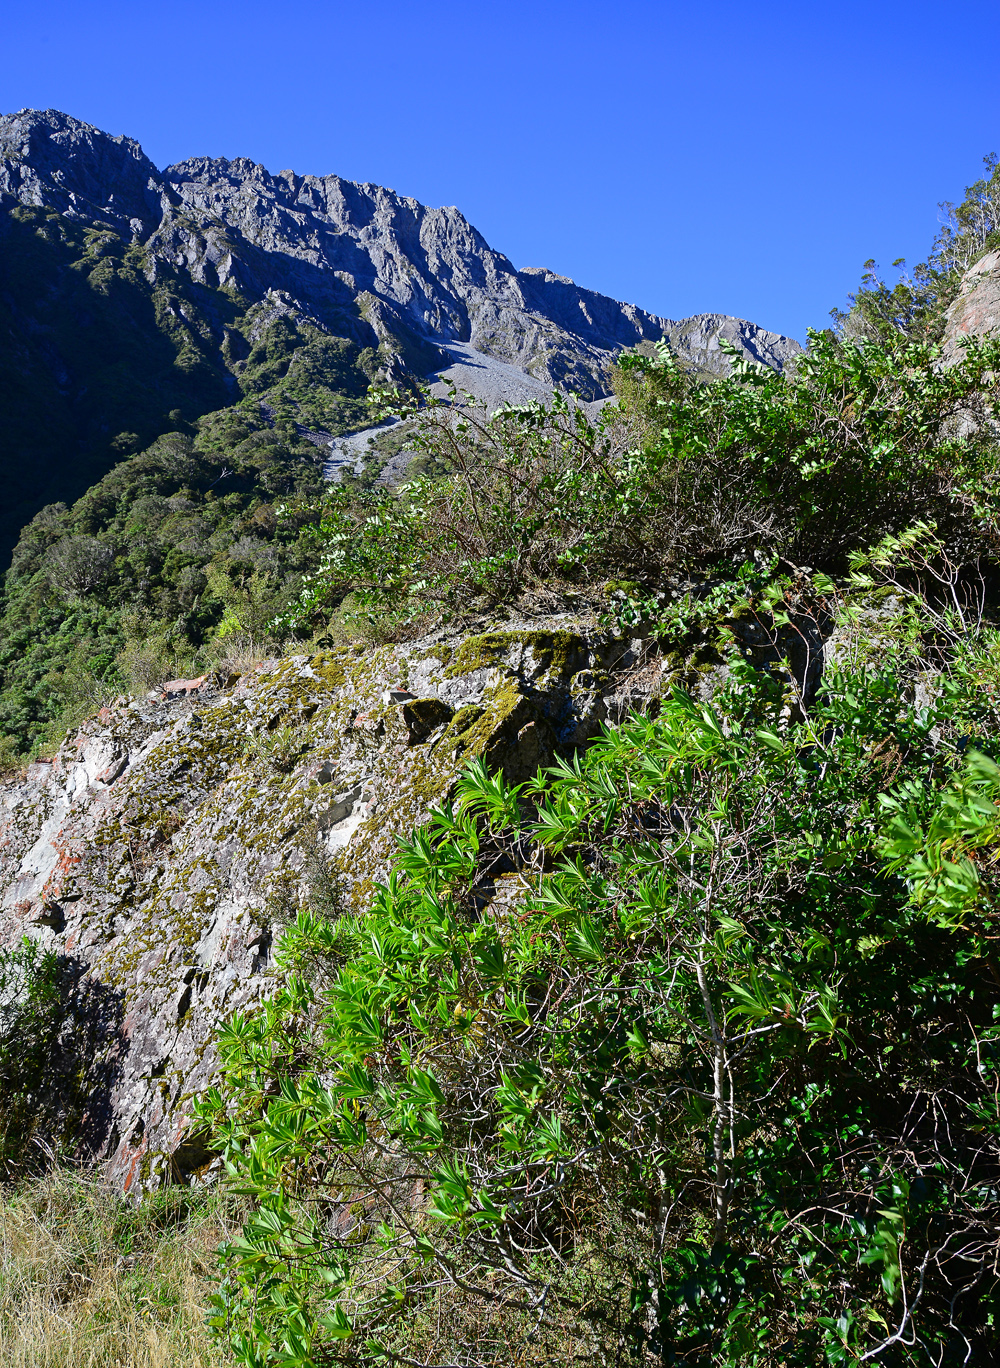 No. 9  Hebe native in foreground, Arthurs Pass view near Otira.